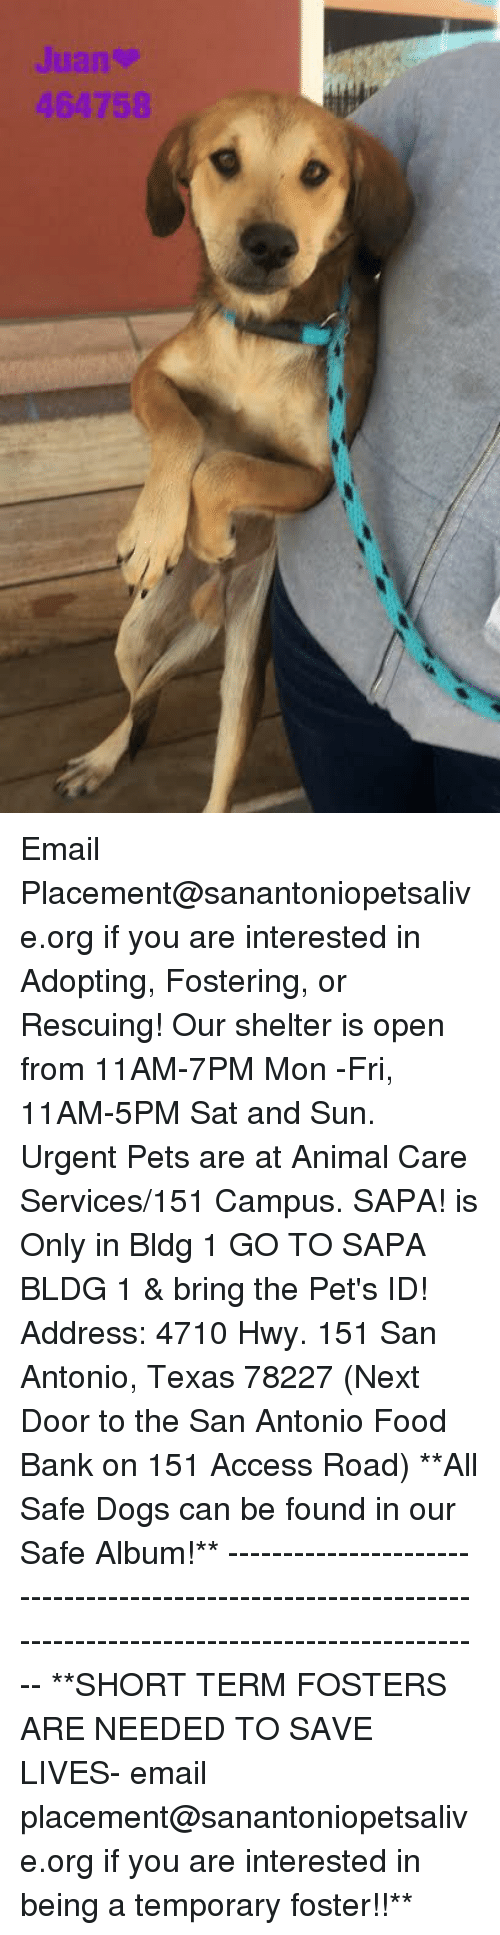 Dogs, Food, and Memes: 464758 Email Placement@sanantoniopetsalive.org if you are interested in Adopting, Fostering, or Rescuing!  Our shelter is open from 11AM-7PM Mon -Fri, 11AM-5PM Sat and Sun.  Urgent Pets are at Animal Care Services/151 Campus. SAPA! is Only in Bldg 1 GO TO SAPA BLDG 1 & bring the Pet's ID! Address: 4710 Hwy. 151 San Antonio, Texas 78227 (Next Door to the San Antonio Food Bank on 151 Access Road)  **All Safe Dogs can be found in our Safe Album!** ---------------------------------------------------------------------------------------------------------- **SHORT TERM FOSTERS ARE NEEDED TO SAVE LIVES- email placement@sanantoniopetsalive.org if you are interested in being a temporary foster!!**